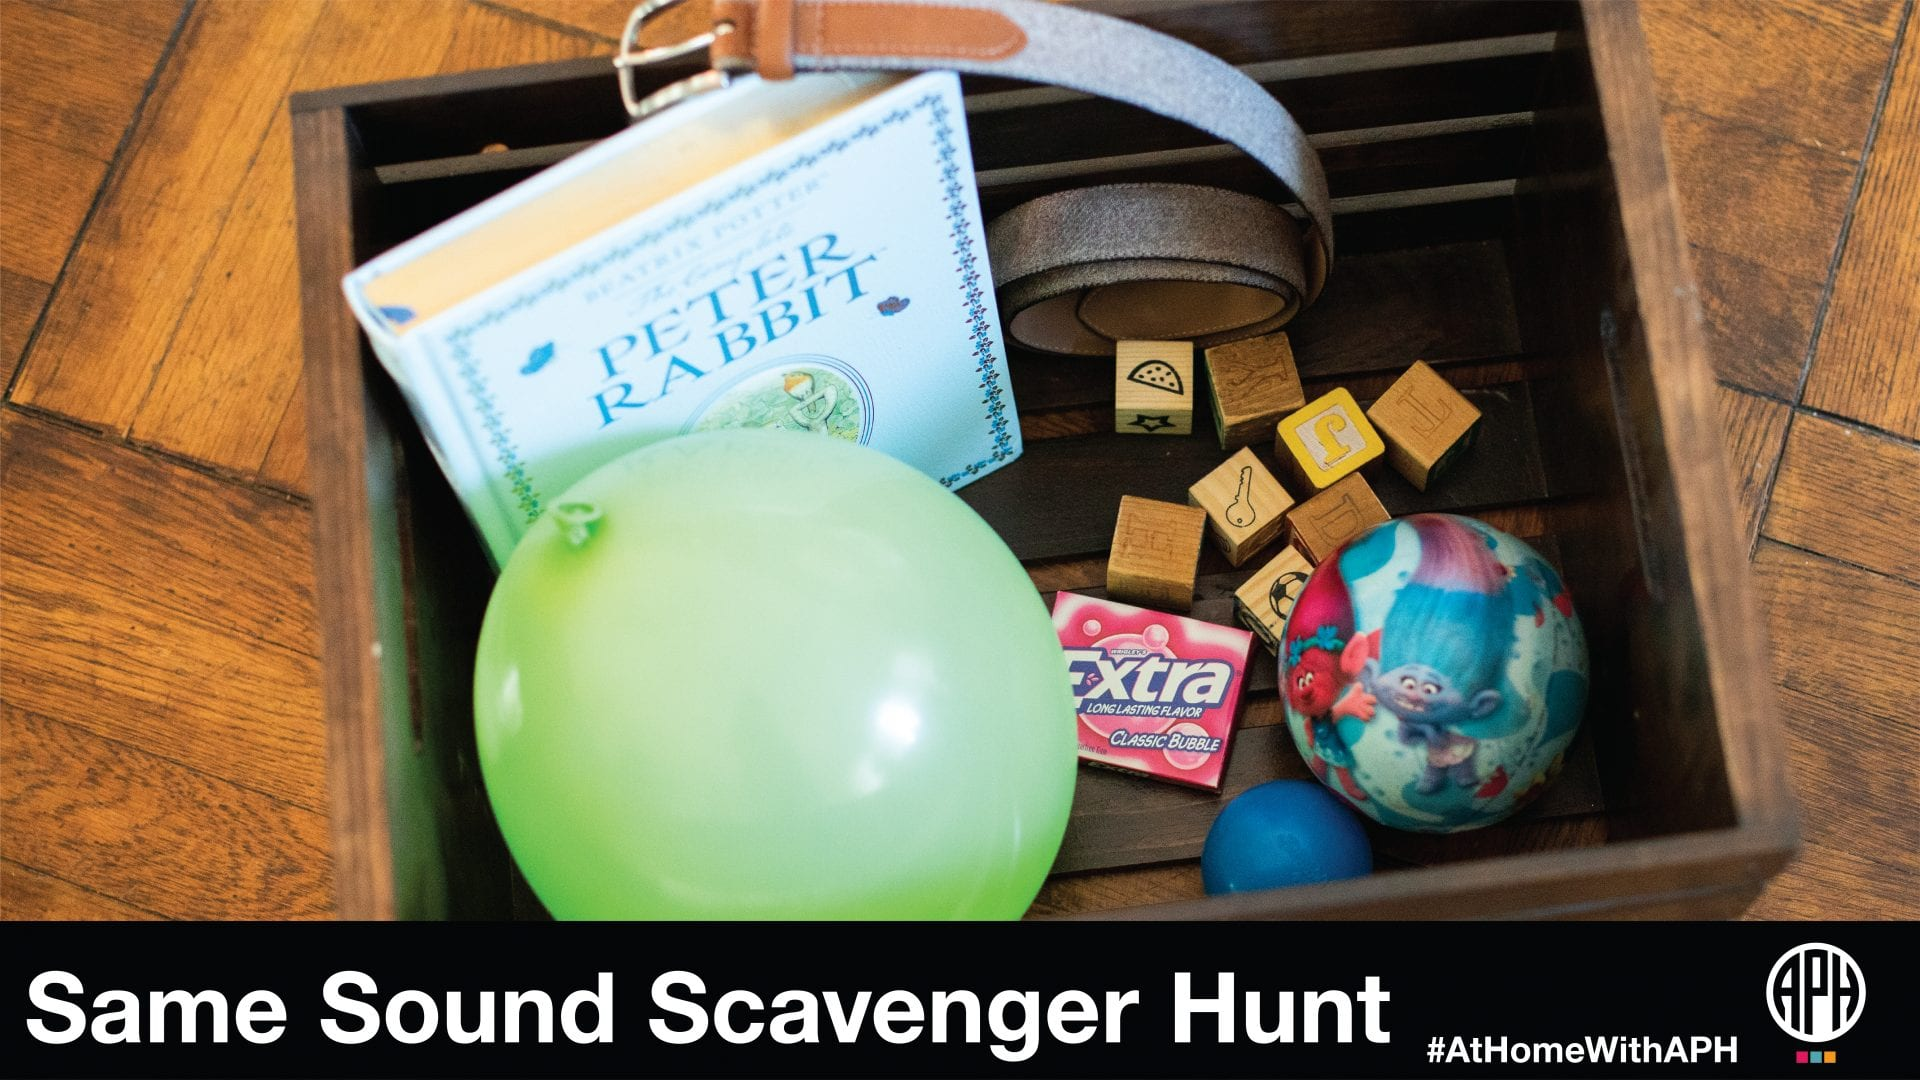 """a box filled with """"b"""" named items like ball and belt. text reads """"Same Sound Scavenger Hunt #AtHomeWithAPH"""""""